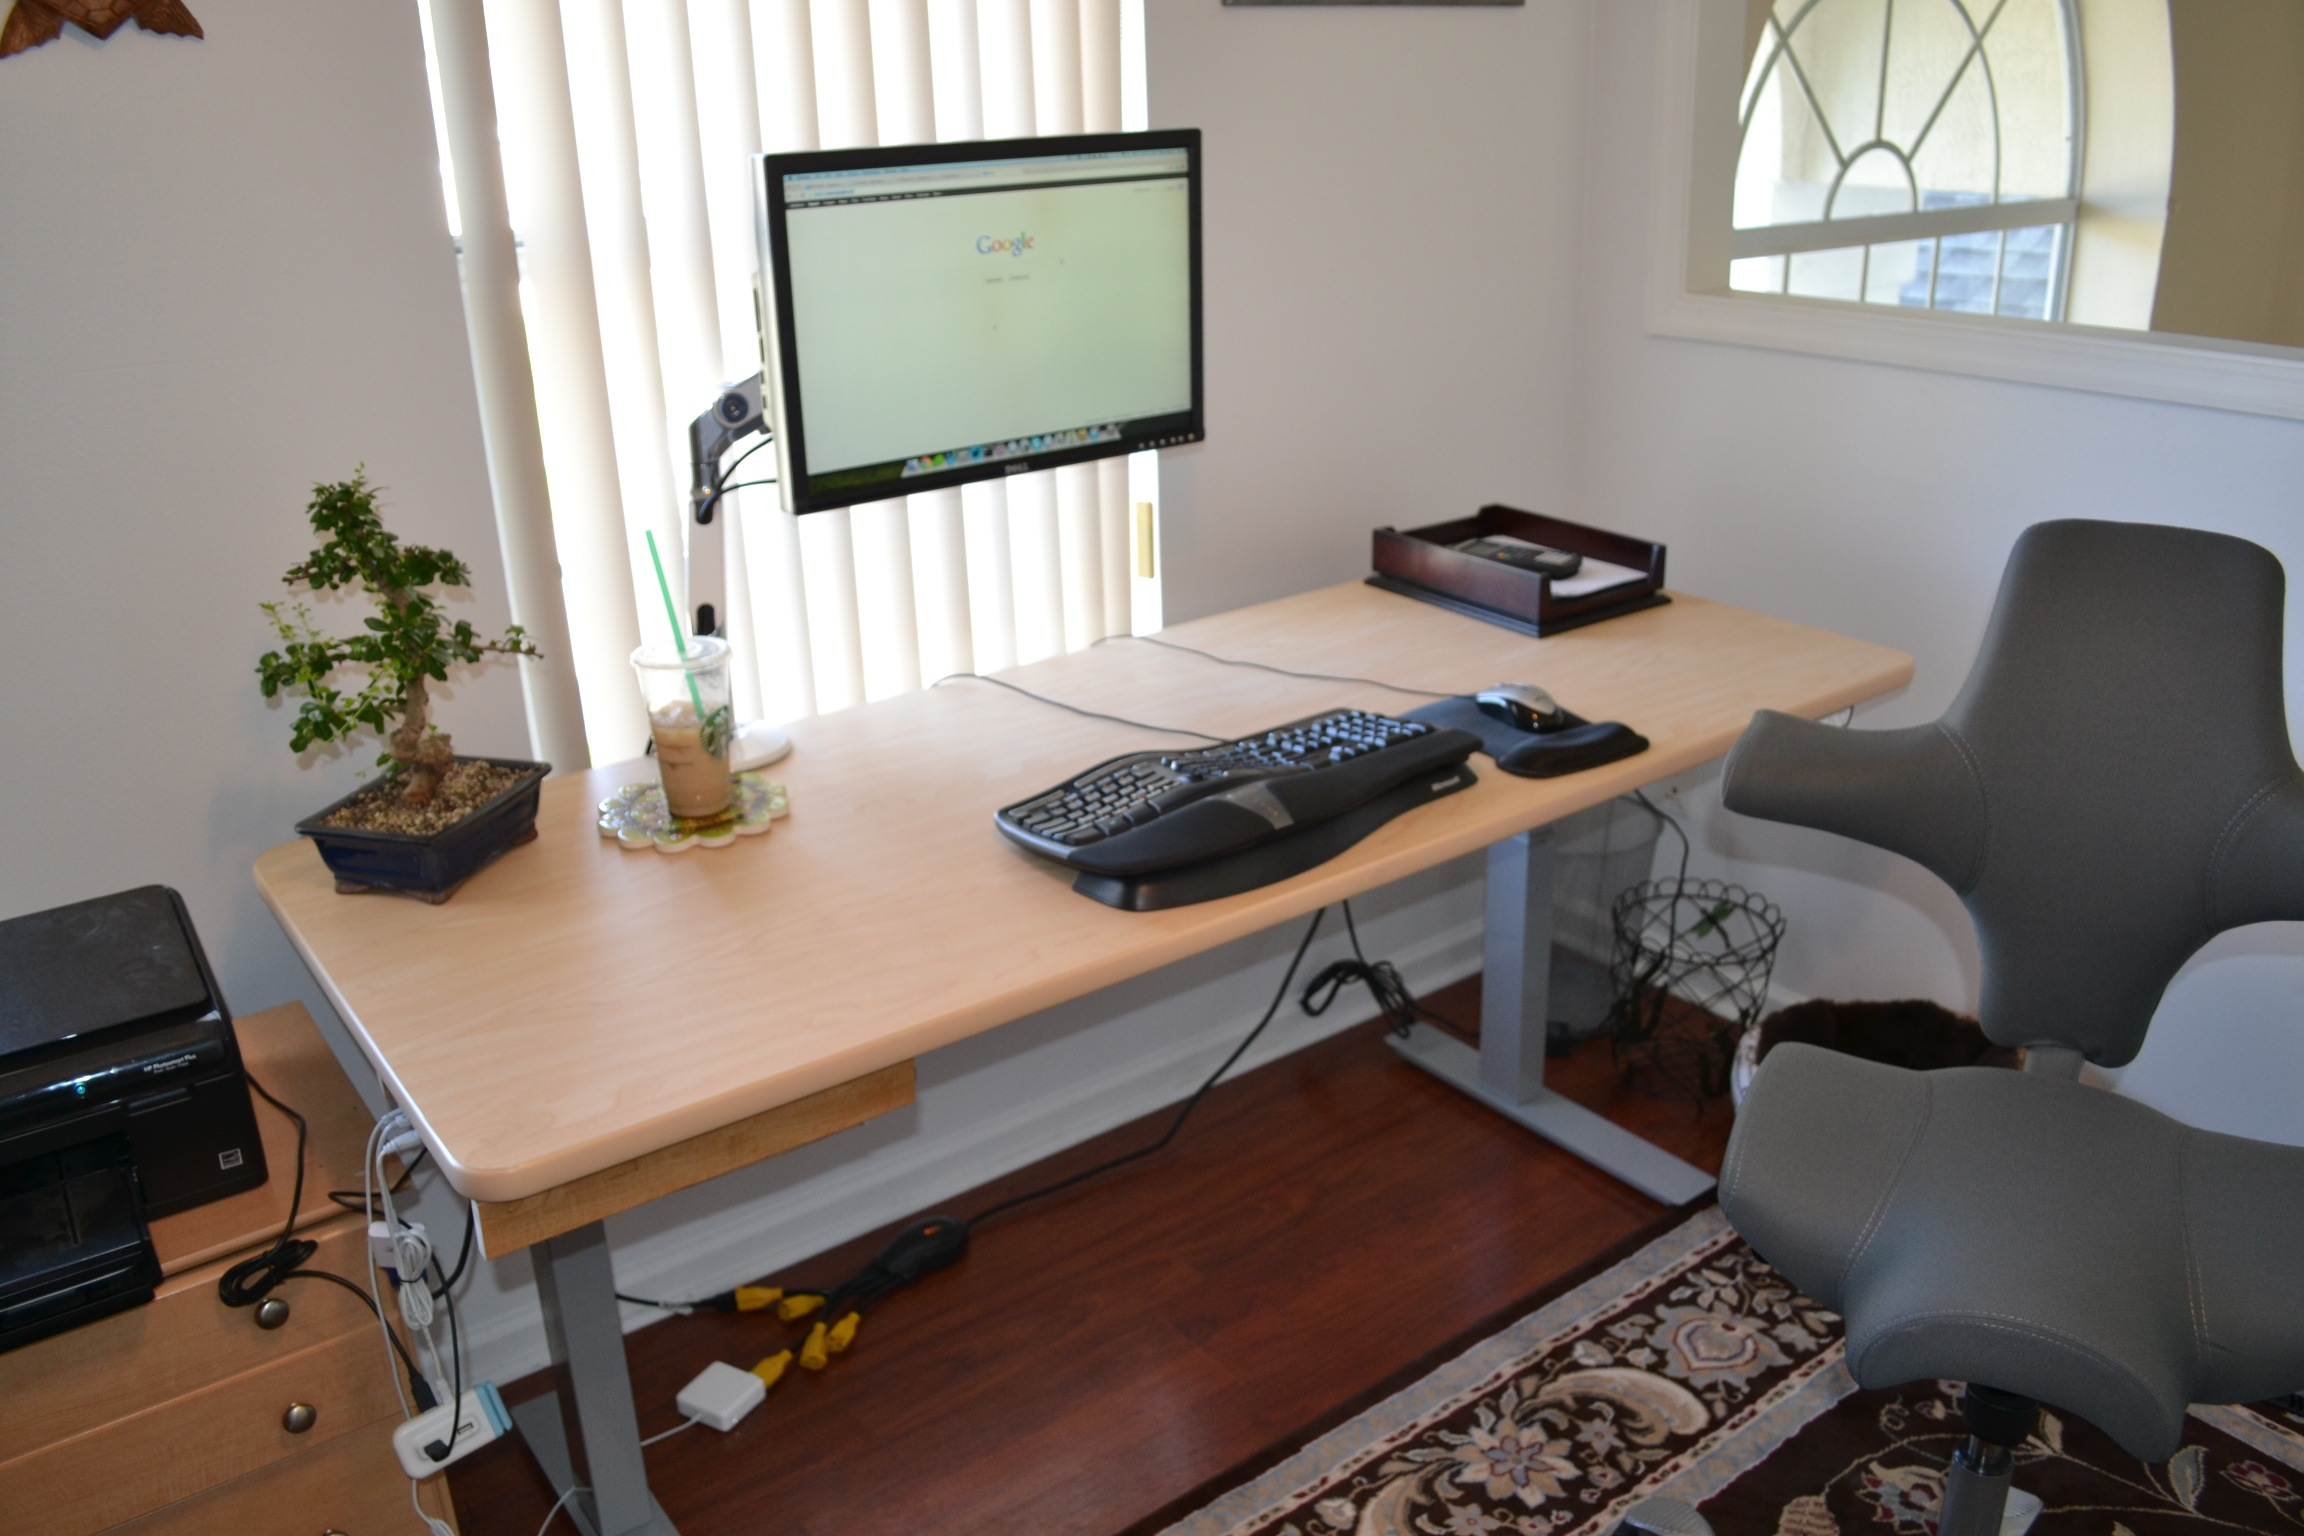 small comfortable chair stool white my new home office, courtesy of automattic and applied ergonomics – matt mazur